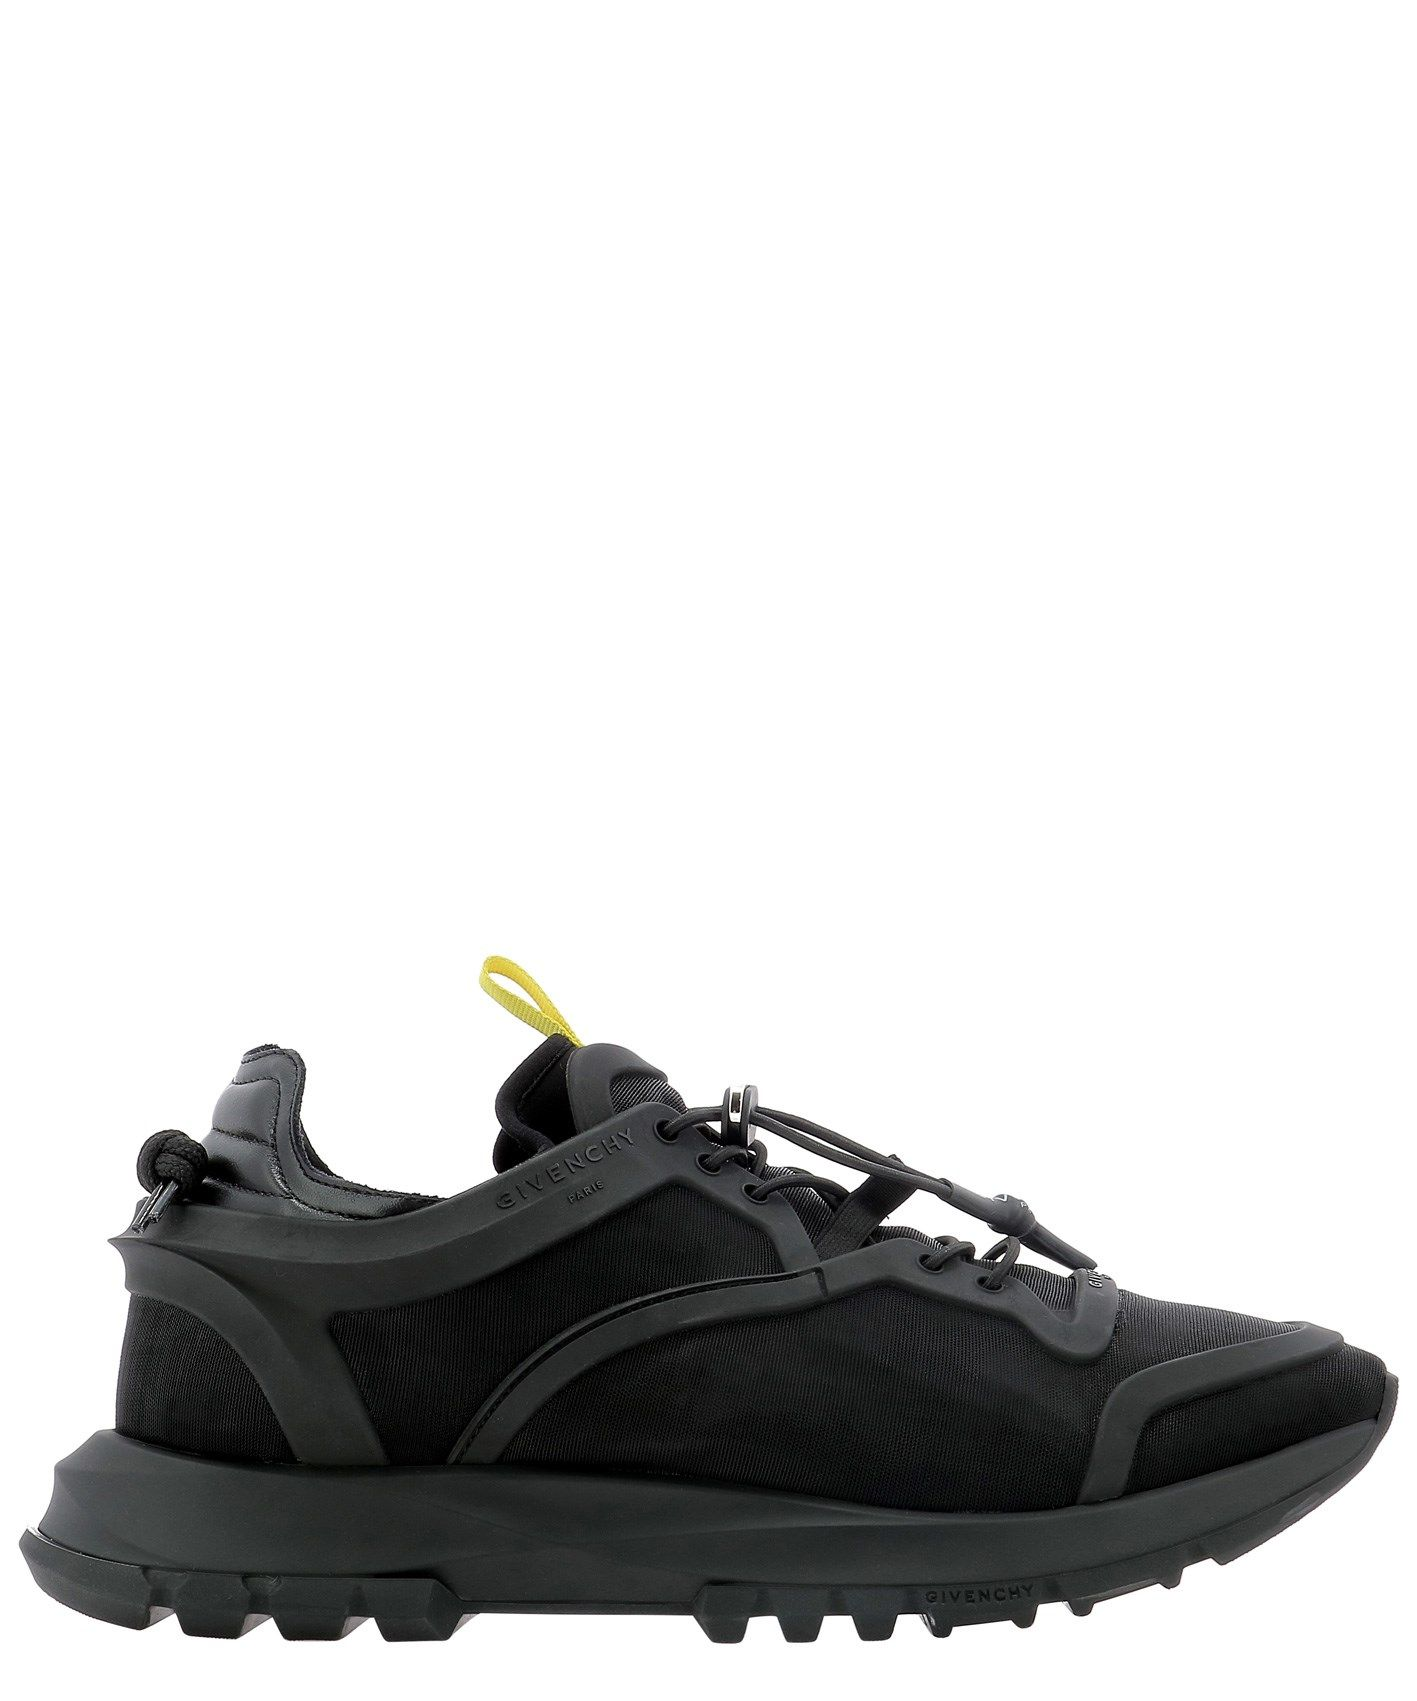 Givenchy GIVENCHY MEN'S BH003EH0PY001 BLACK OTHER MATERIALS SNEAKERS